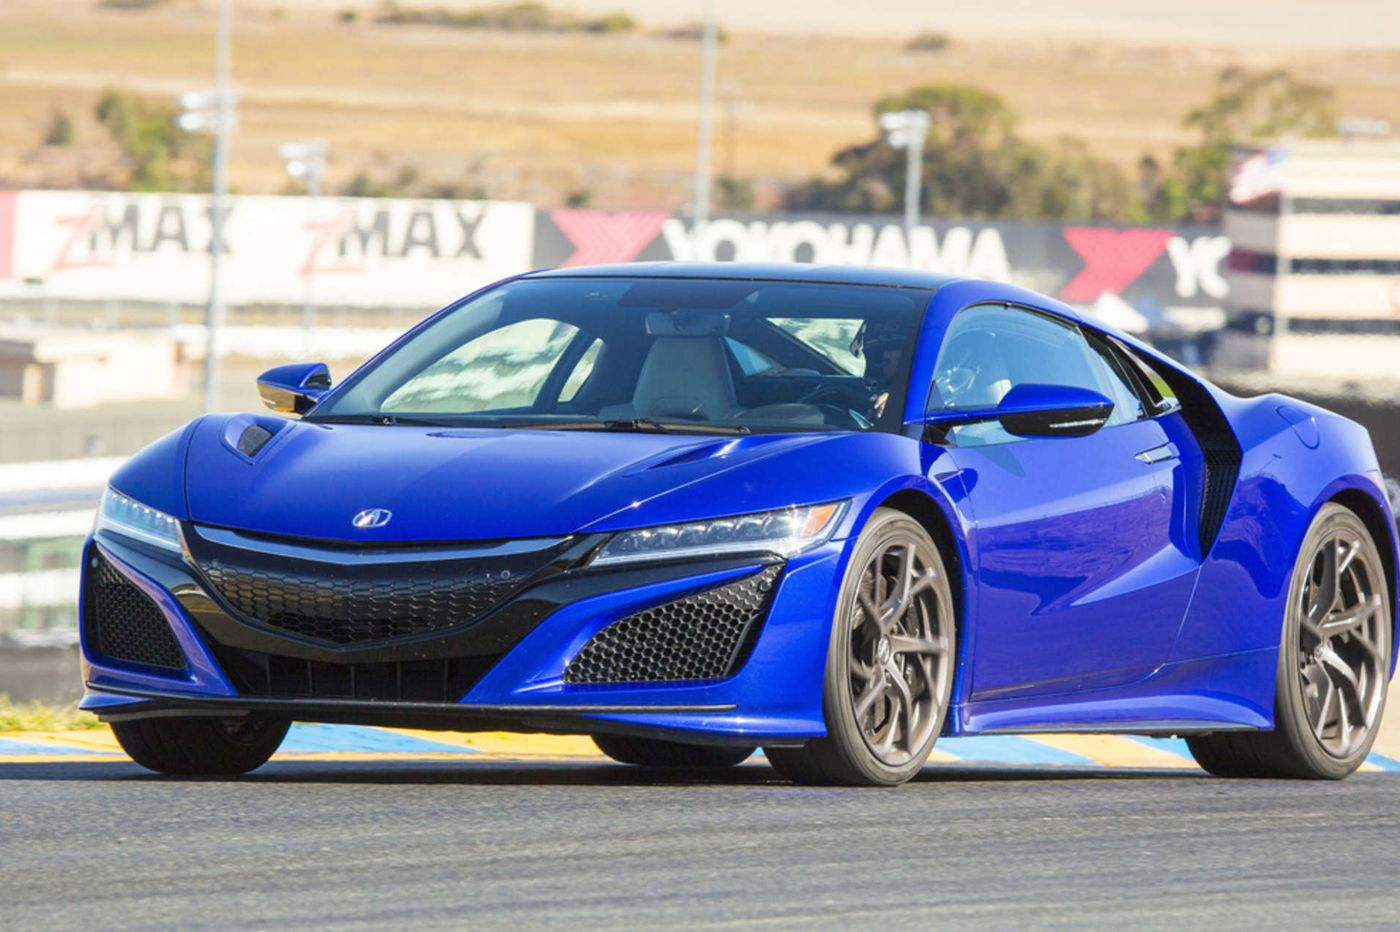 Driver's Seat: Coming soon, a new Acura supercar